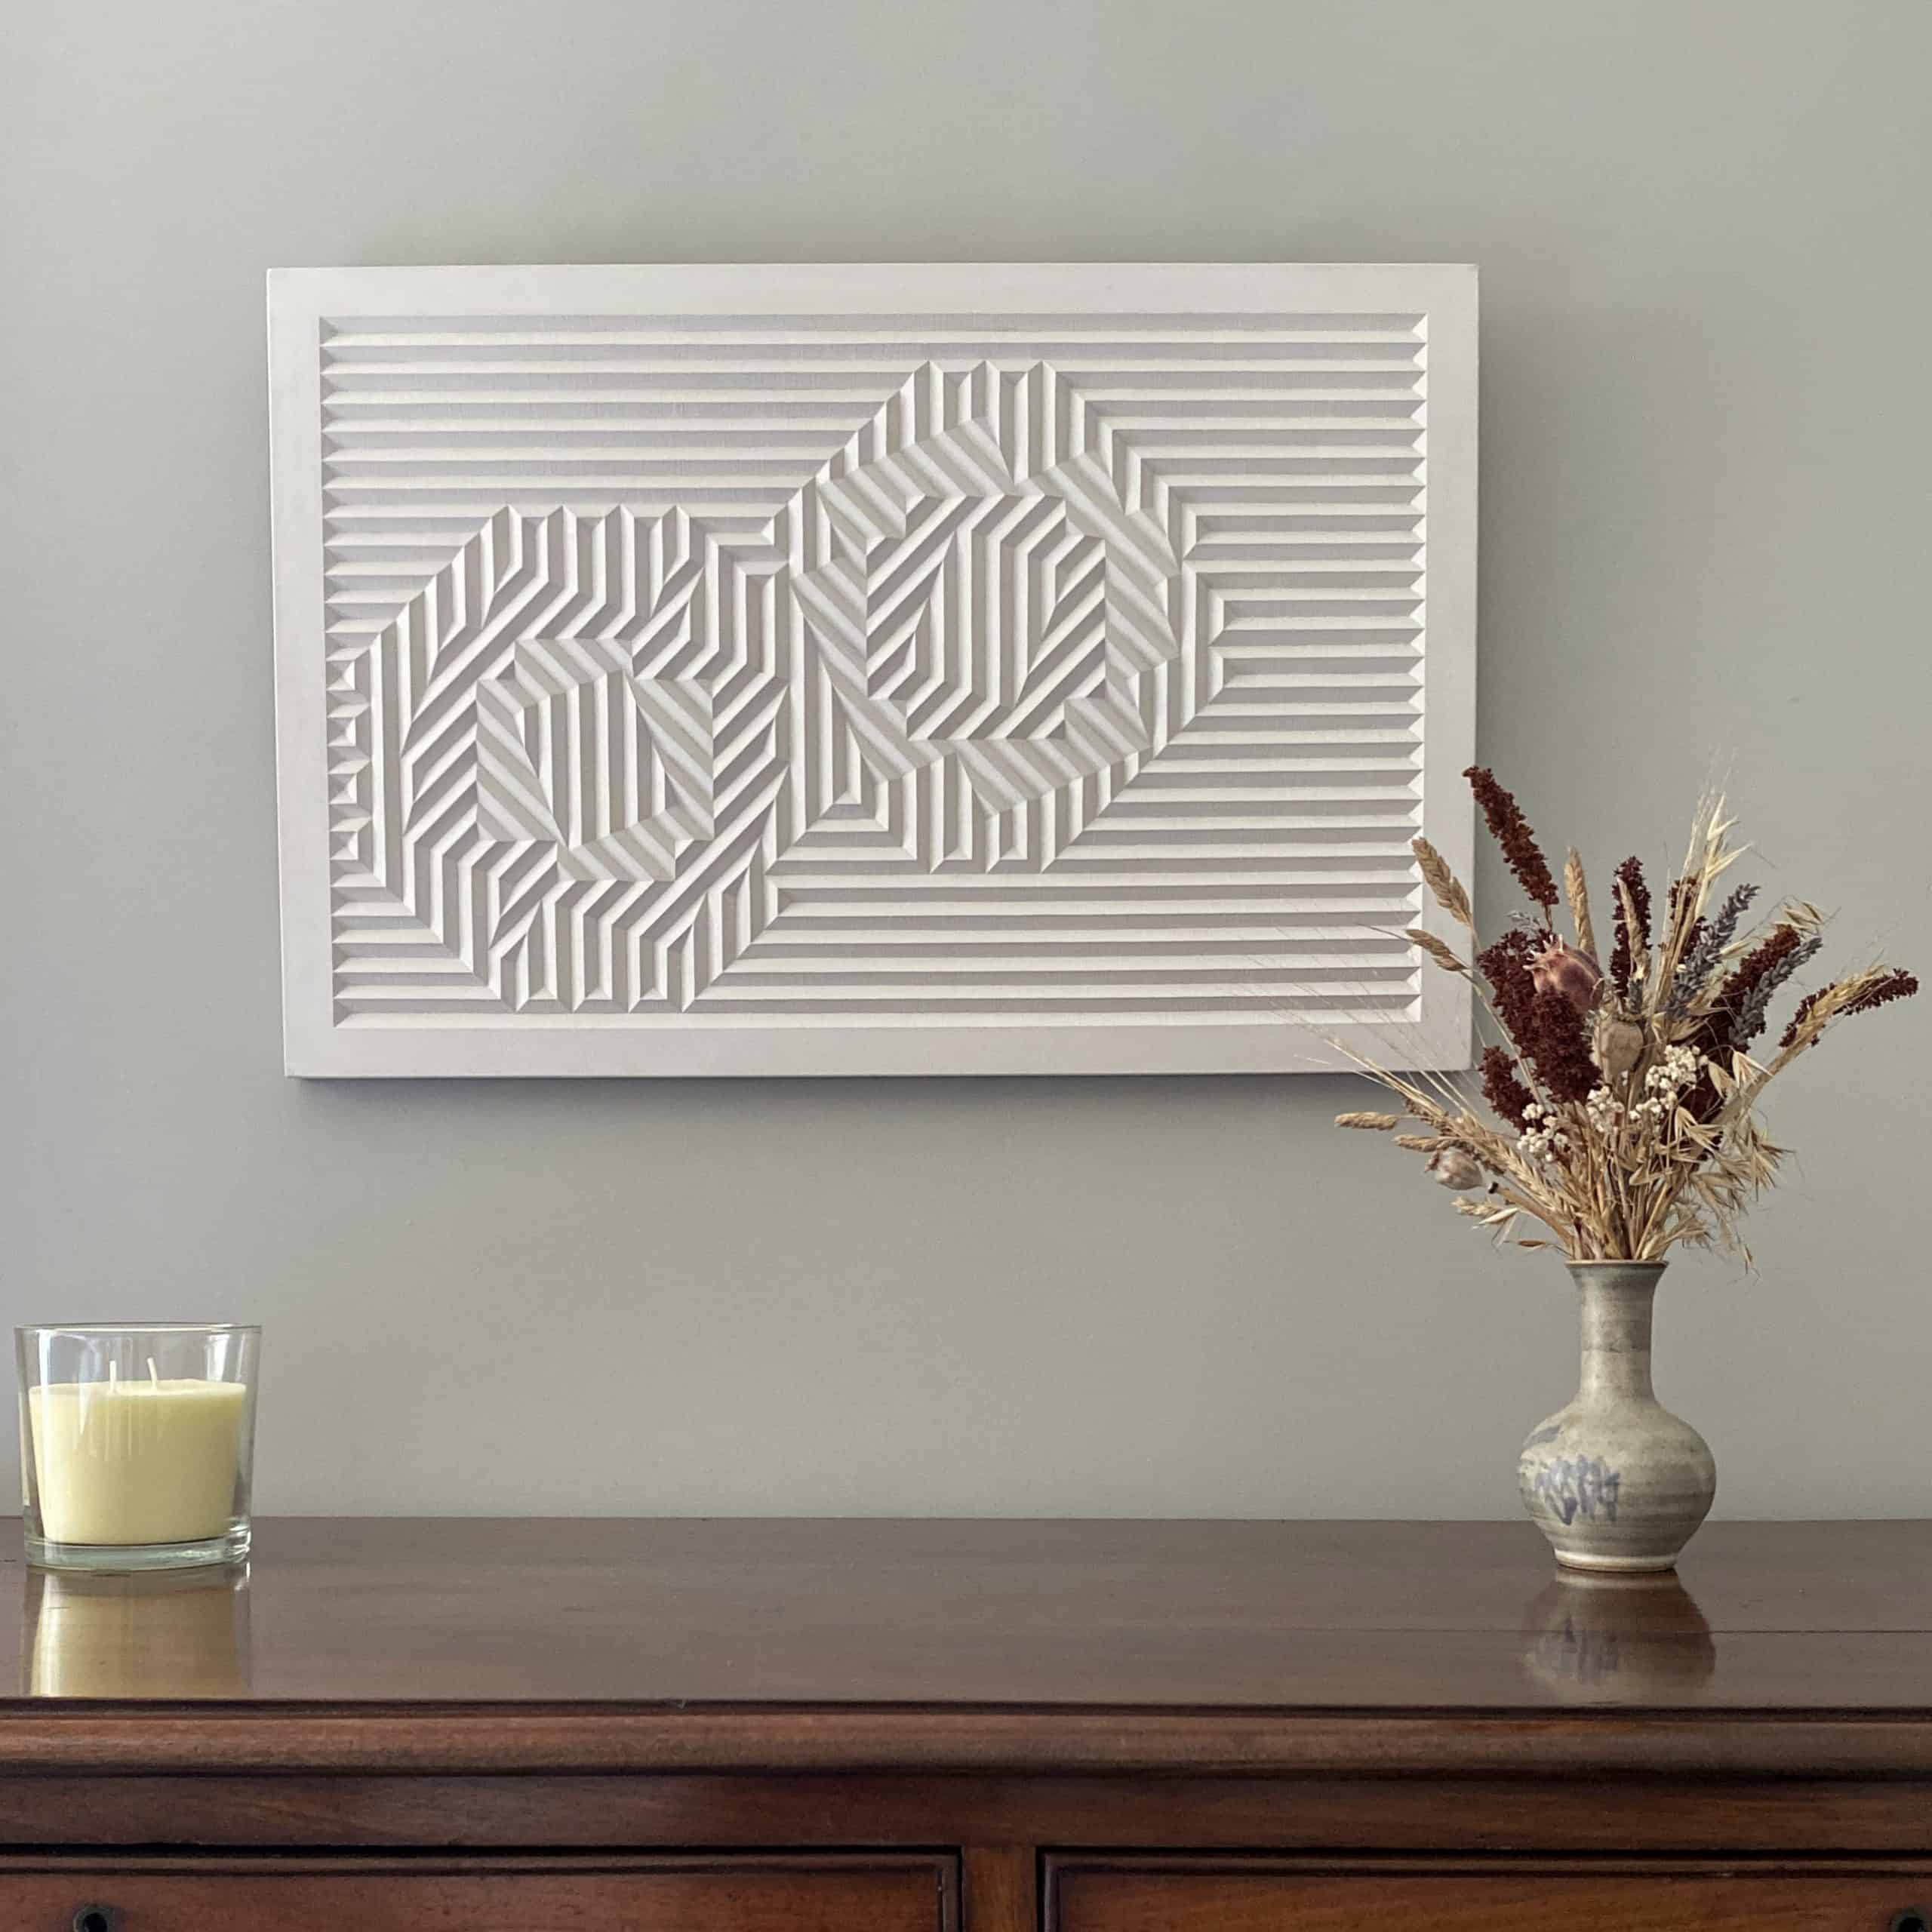 Light coloured cast of a geometric carving hanging on the wall above a chest of drawers